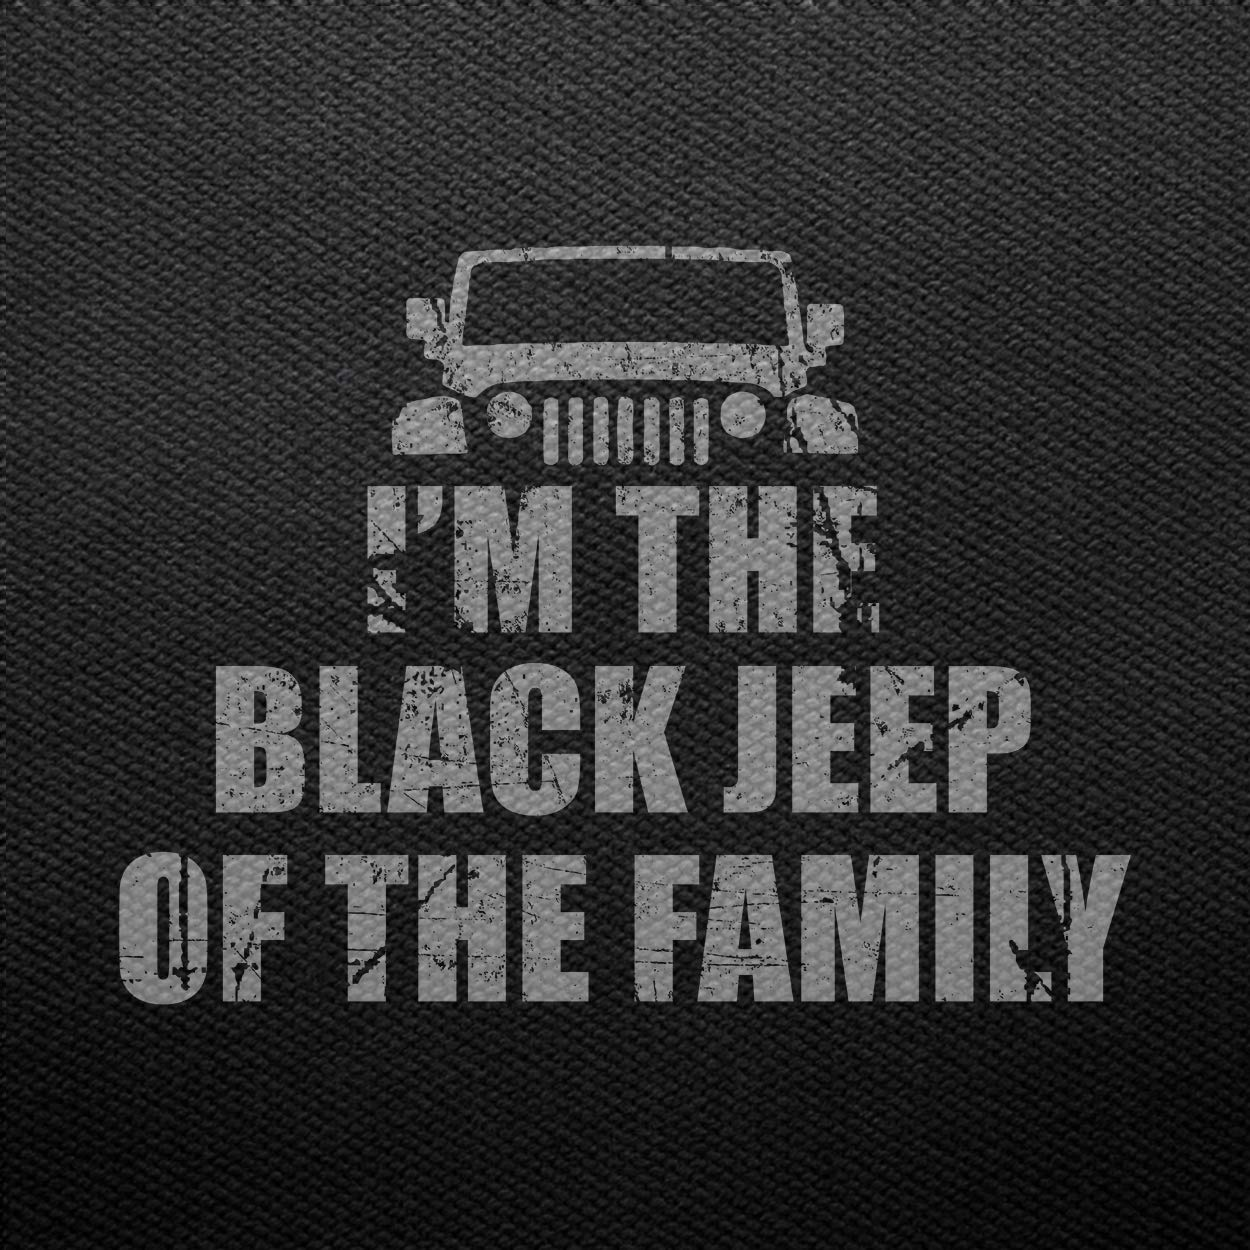 Teechopchop Im The Black Jeep of The Family for Jeep T-Shirt